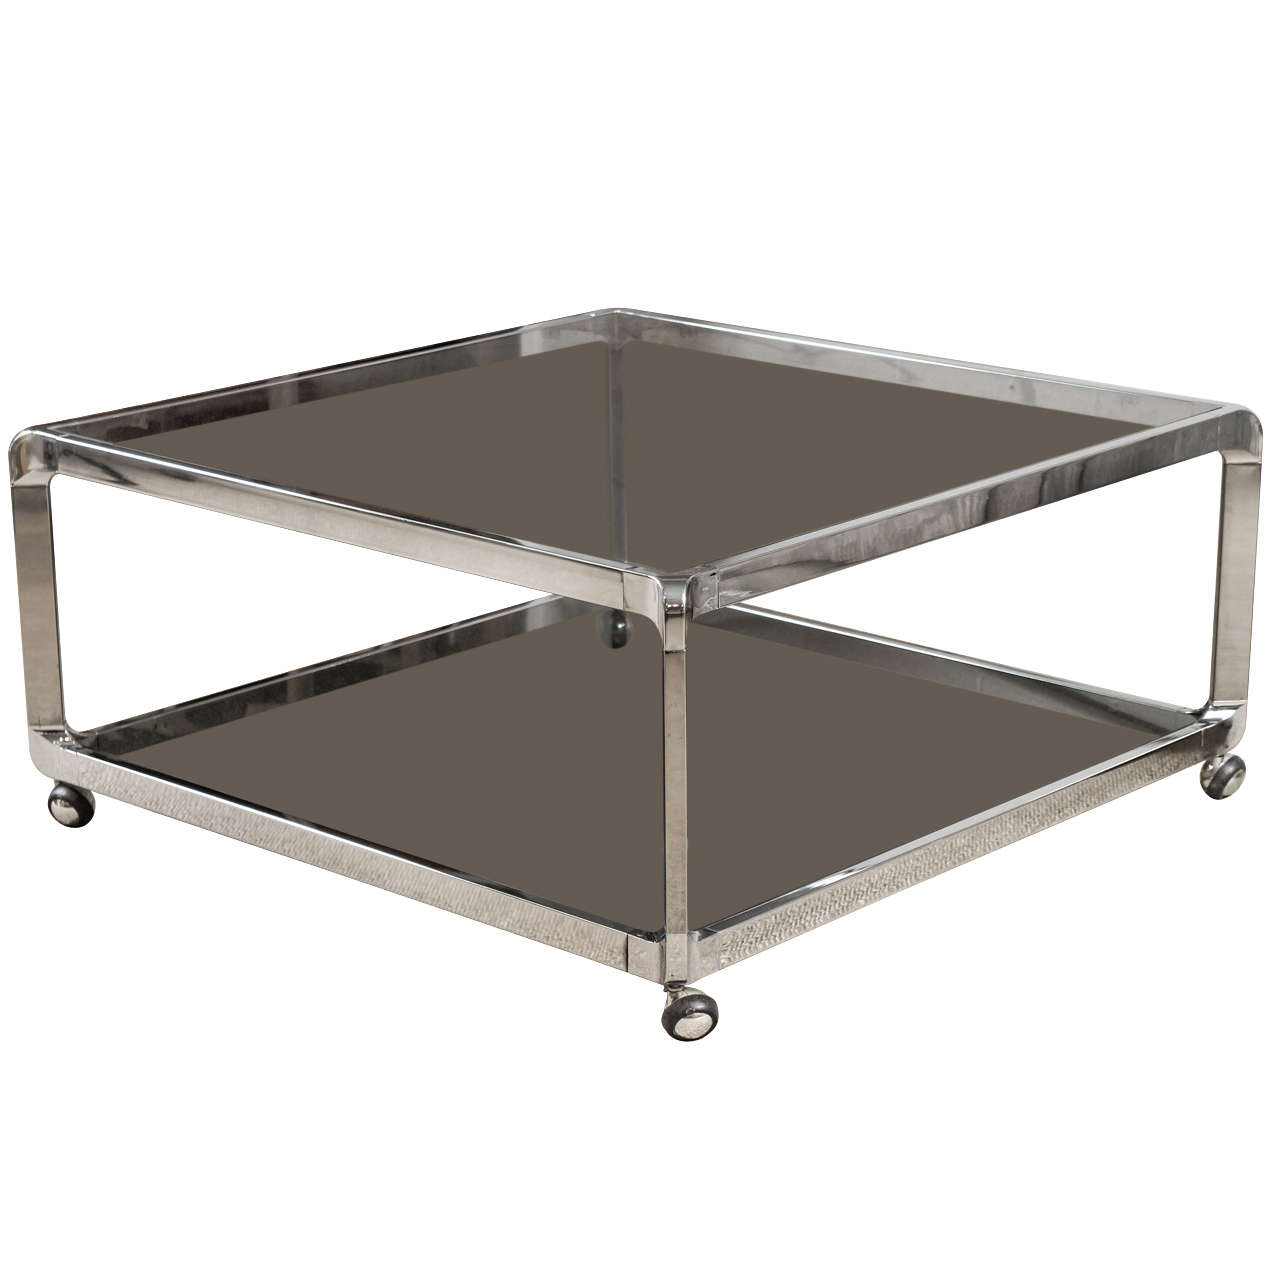 A Two Tiered Chrome Coffee Table